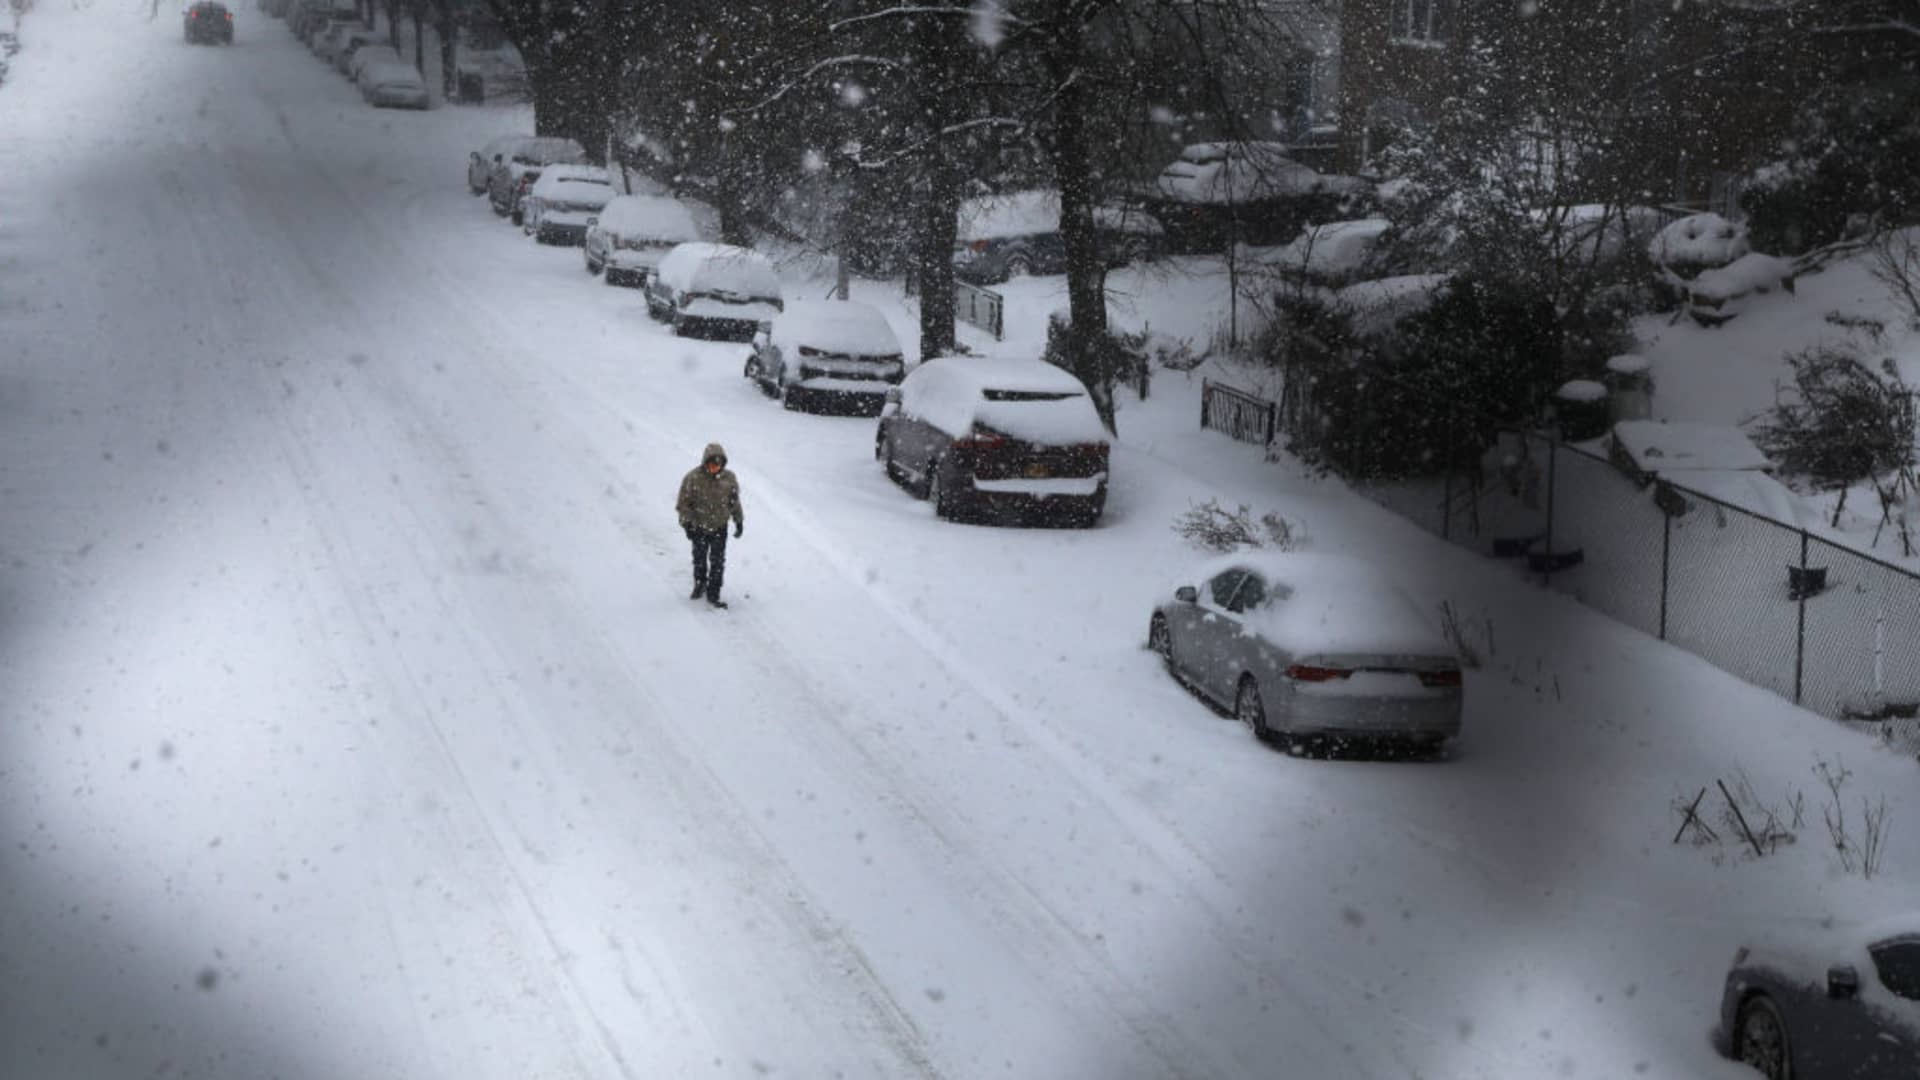 People walk through the snow in Brooklyn on February 01, 2021 in New York City.